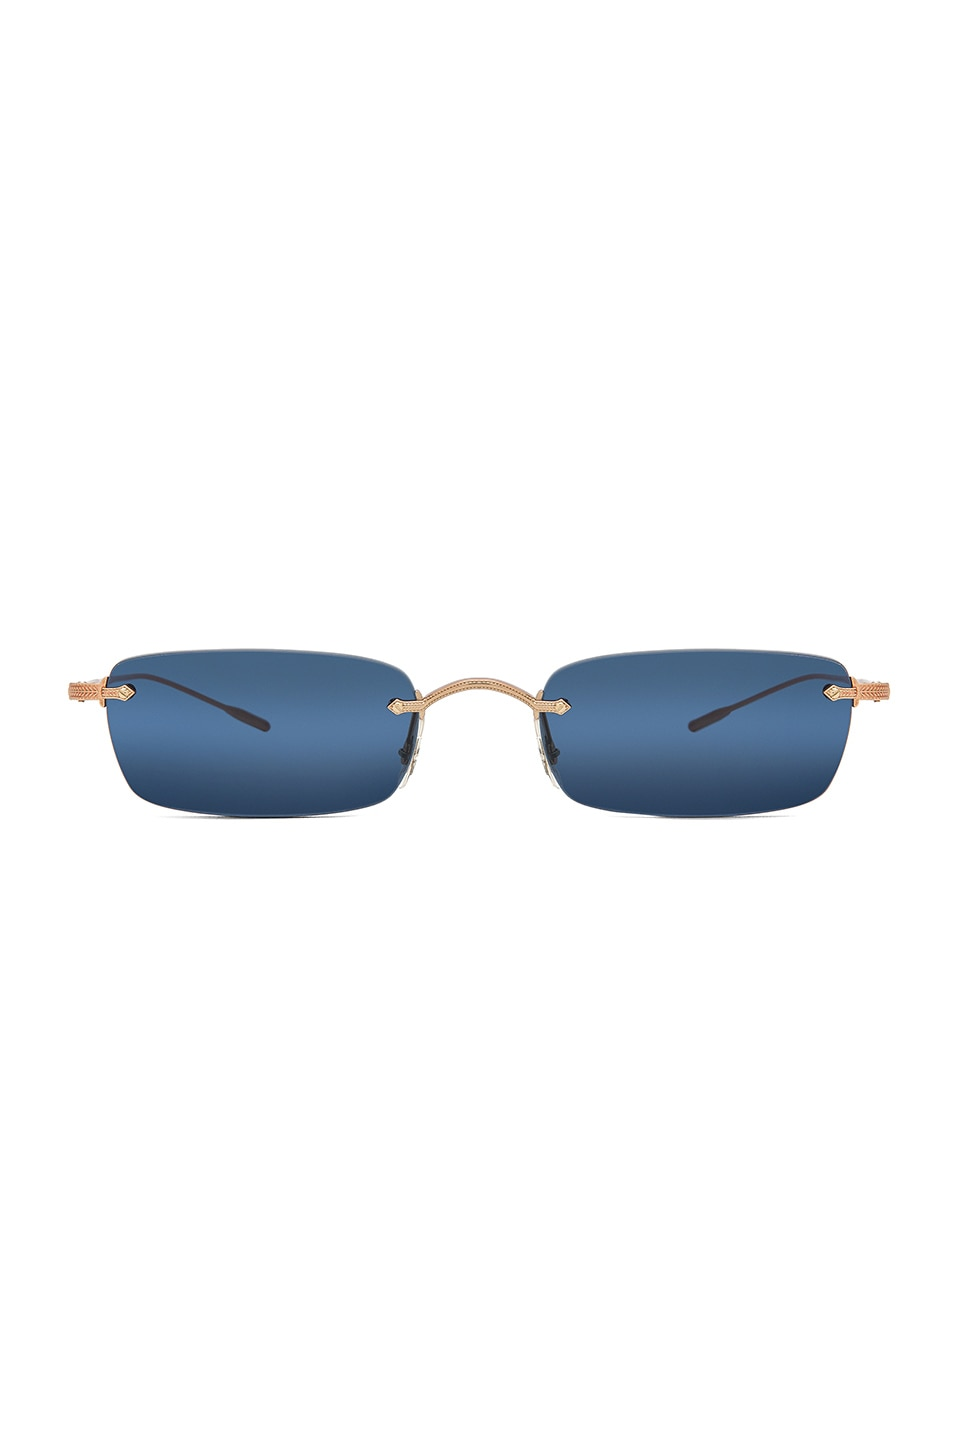 Oliver Peoples Daveigh in Rose Gold & Blue